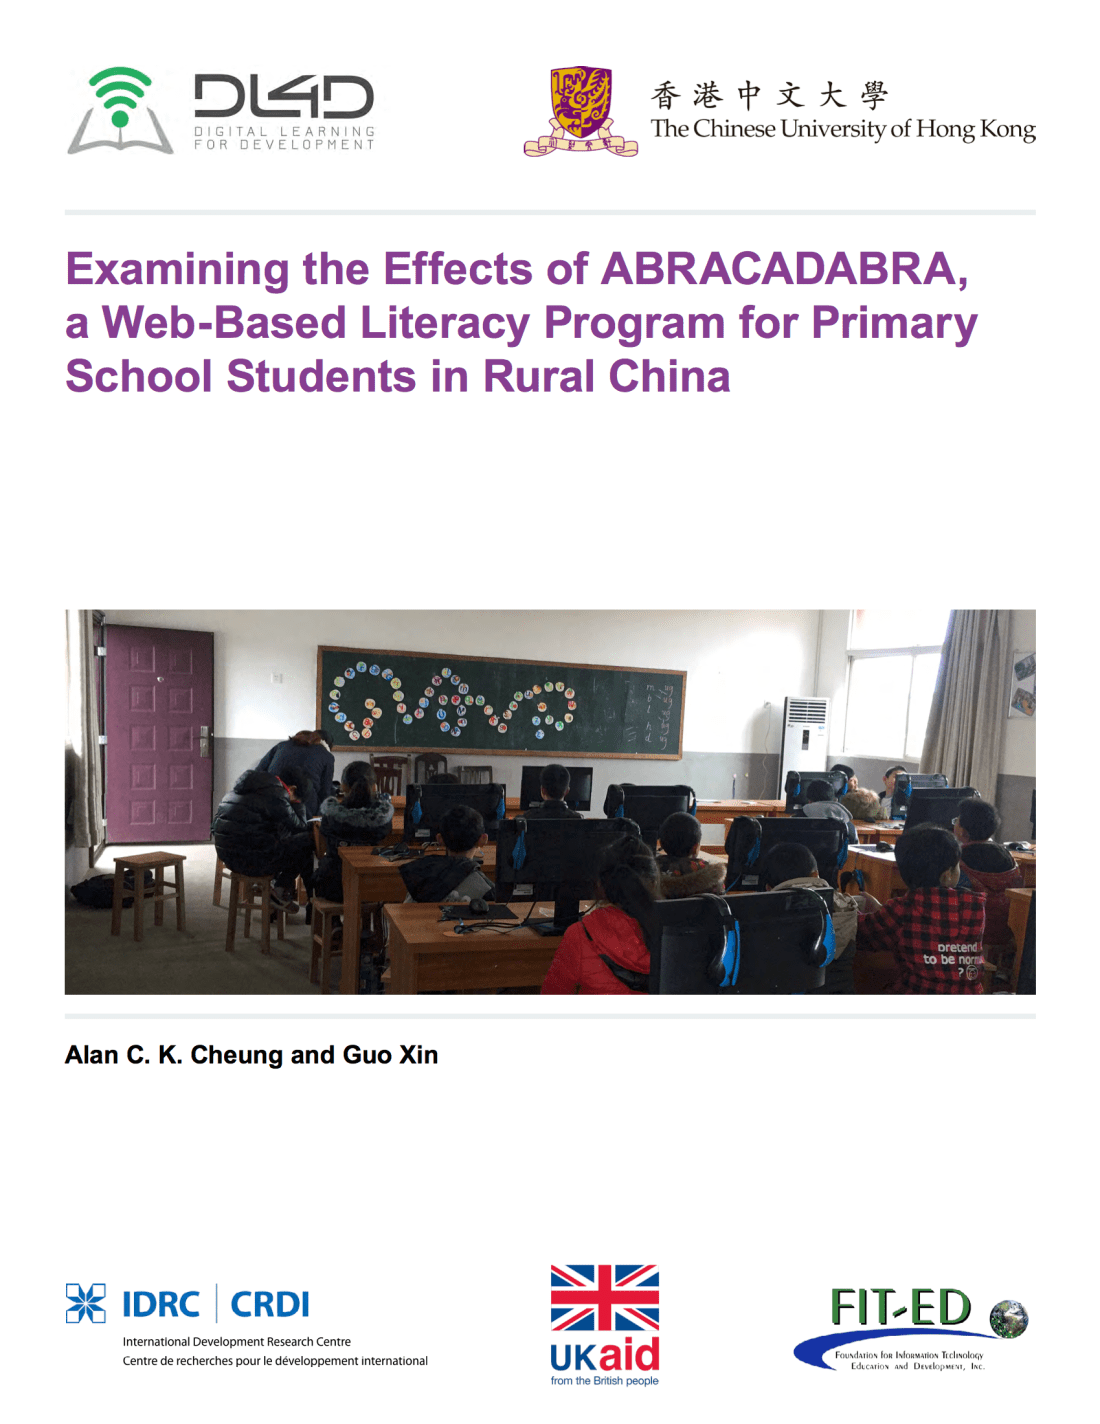 Examining the effects of ABRACADABRA, a web-based literacy